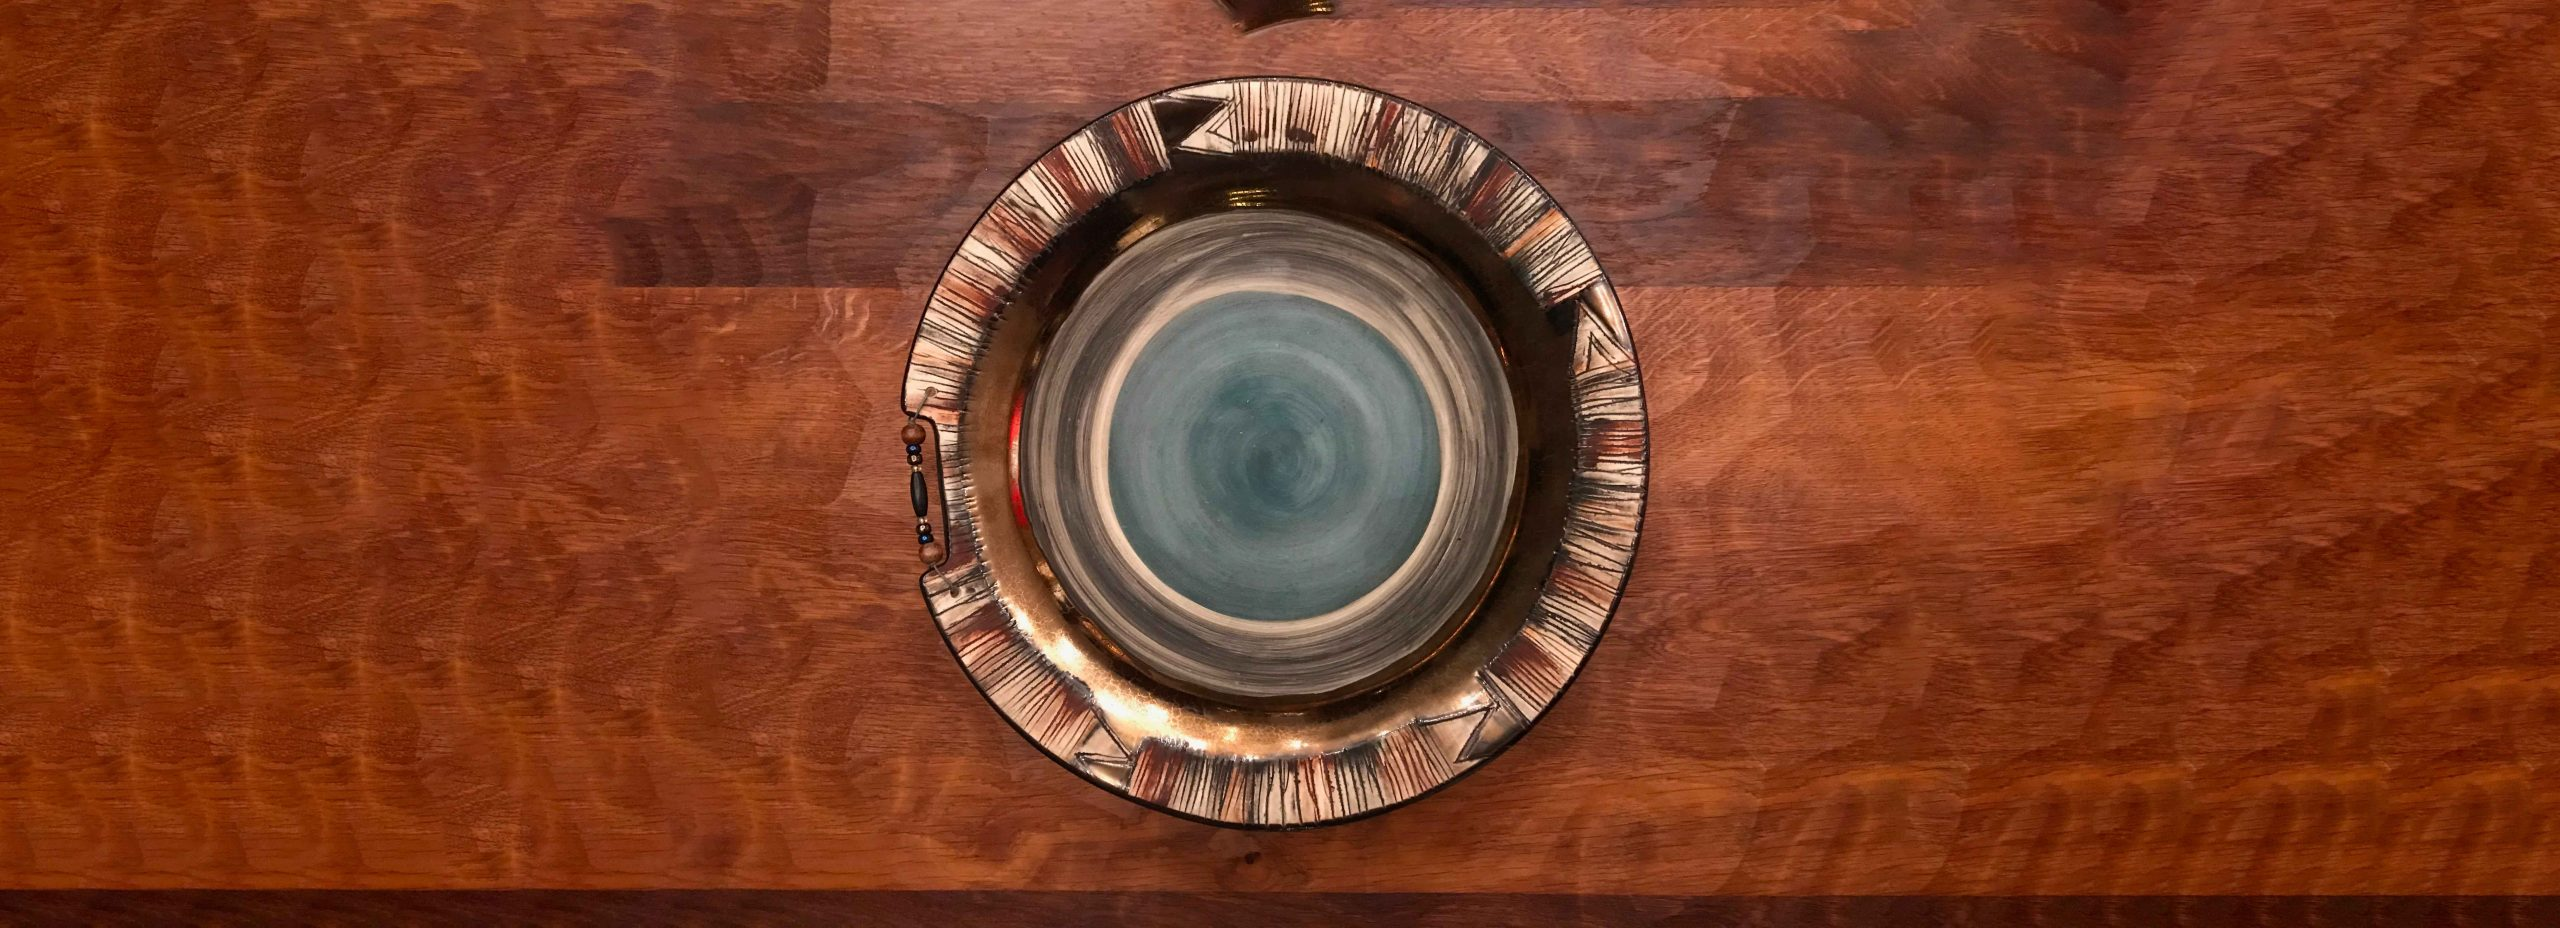 Ceramic bowl handmade in South Africa Earth tones to give a warm feeling